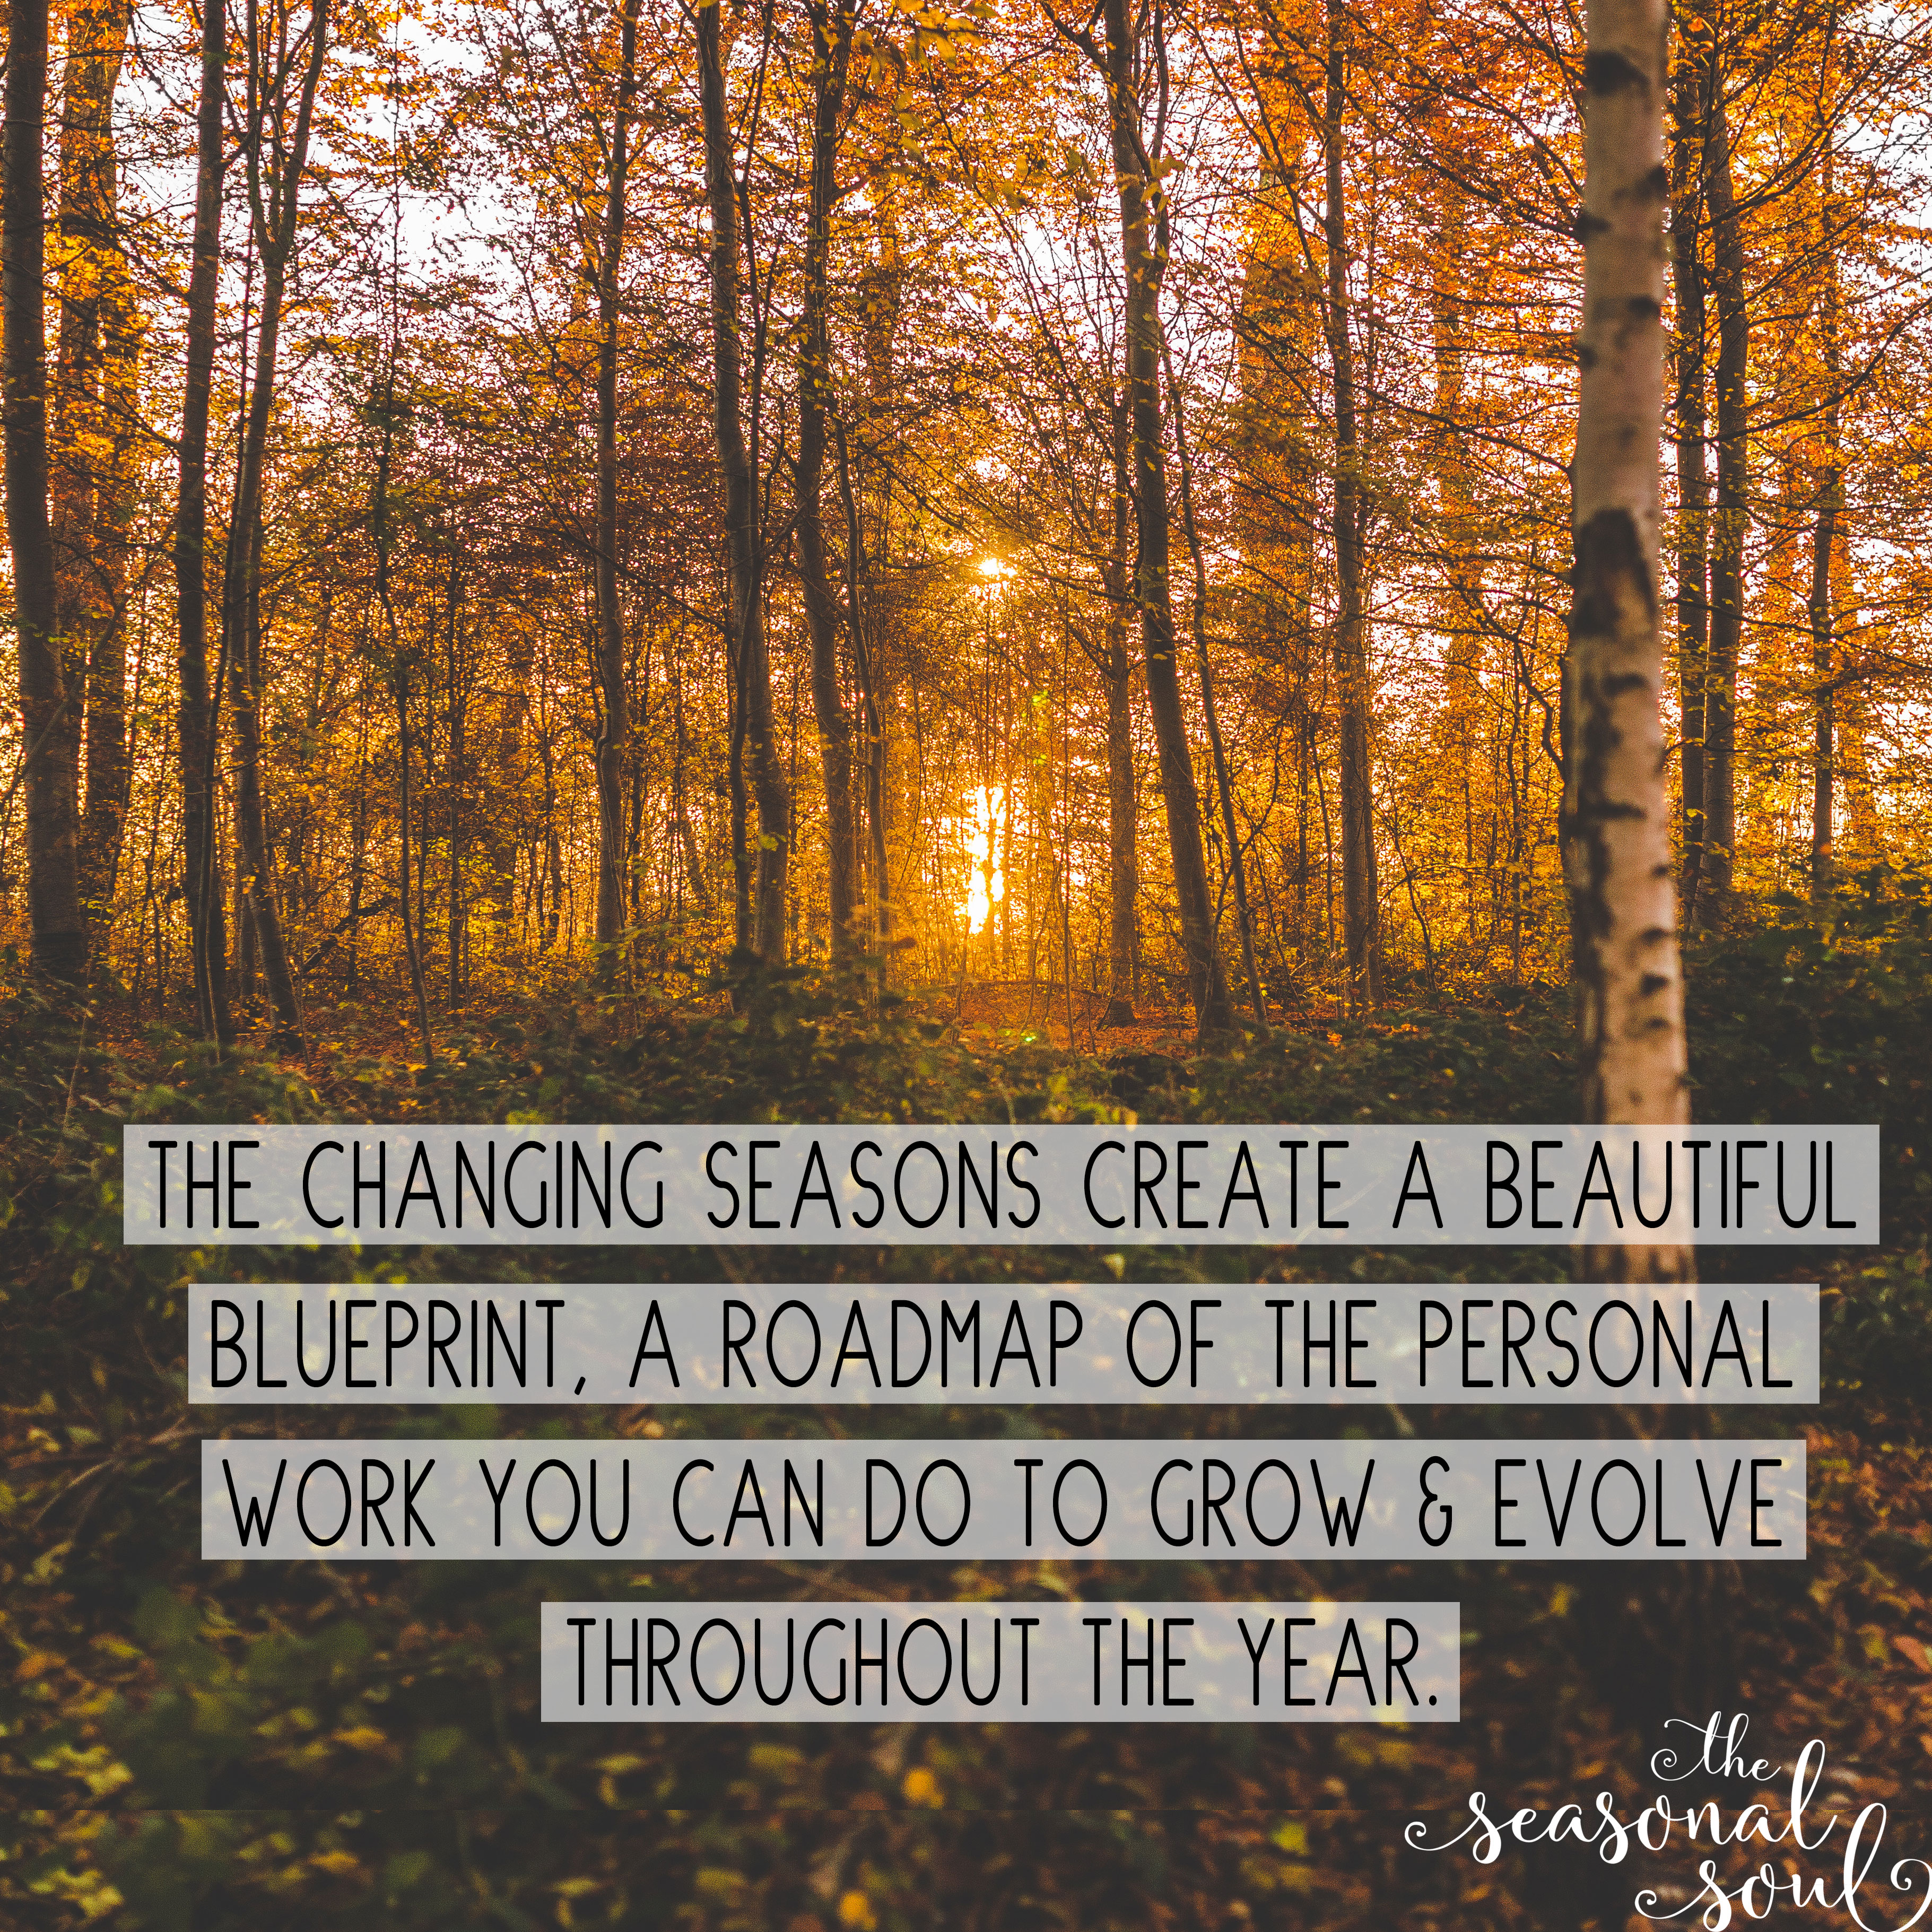 The changing seasons are a roadmap of the spiritual work you can do at each point throughout the year to grow & evolve.